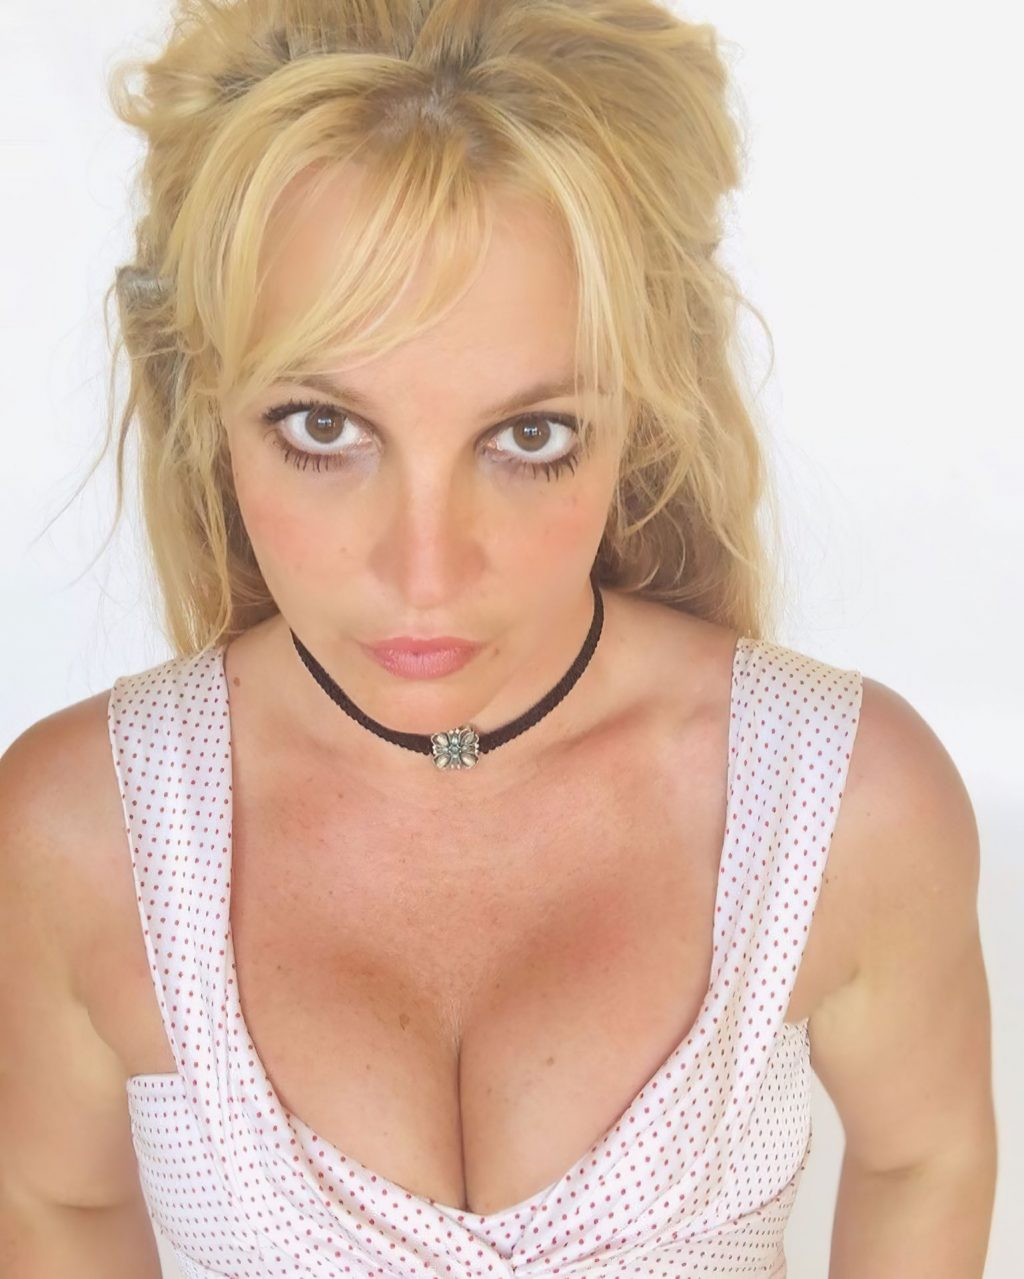 Britney Spears Shows Off Her Cleavage (11 Photos)